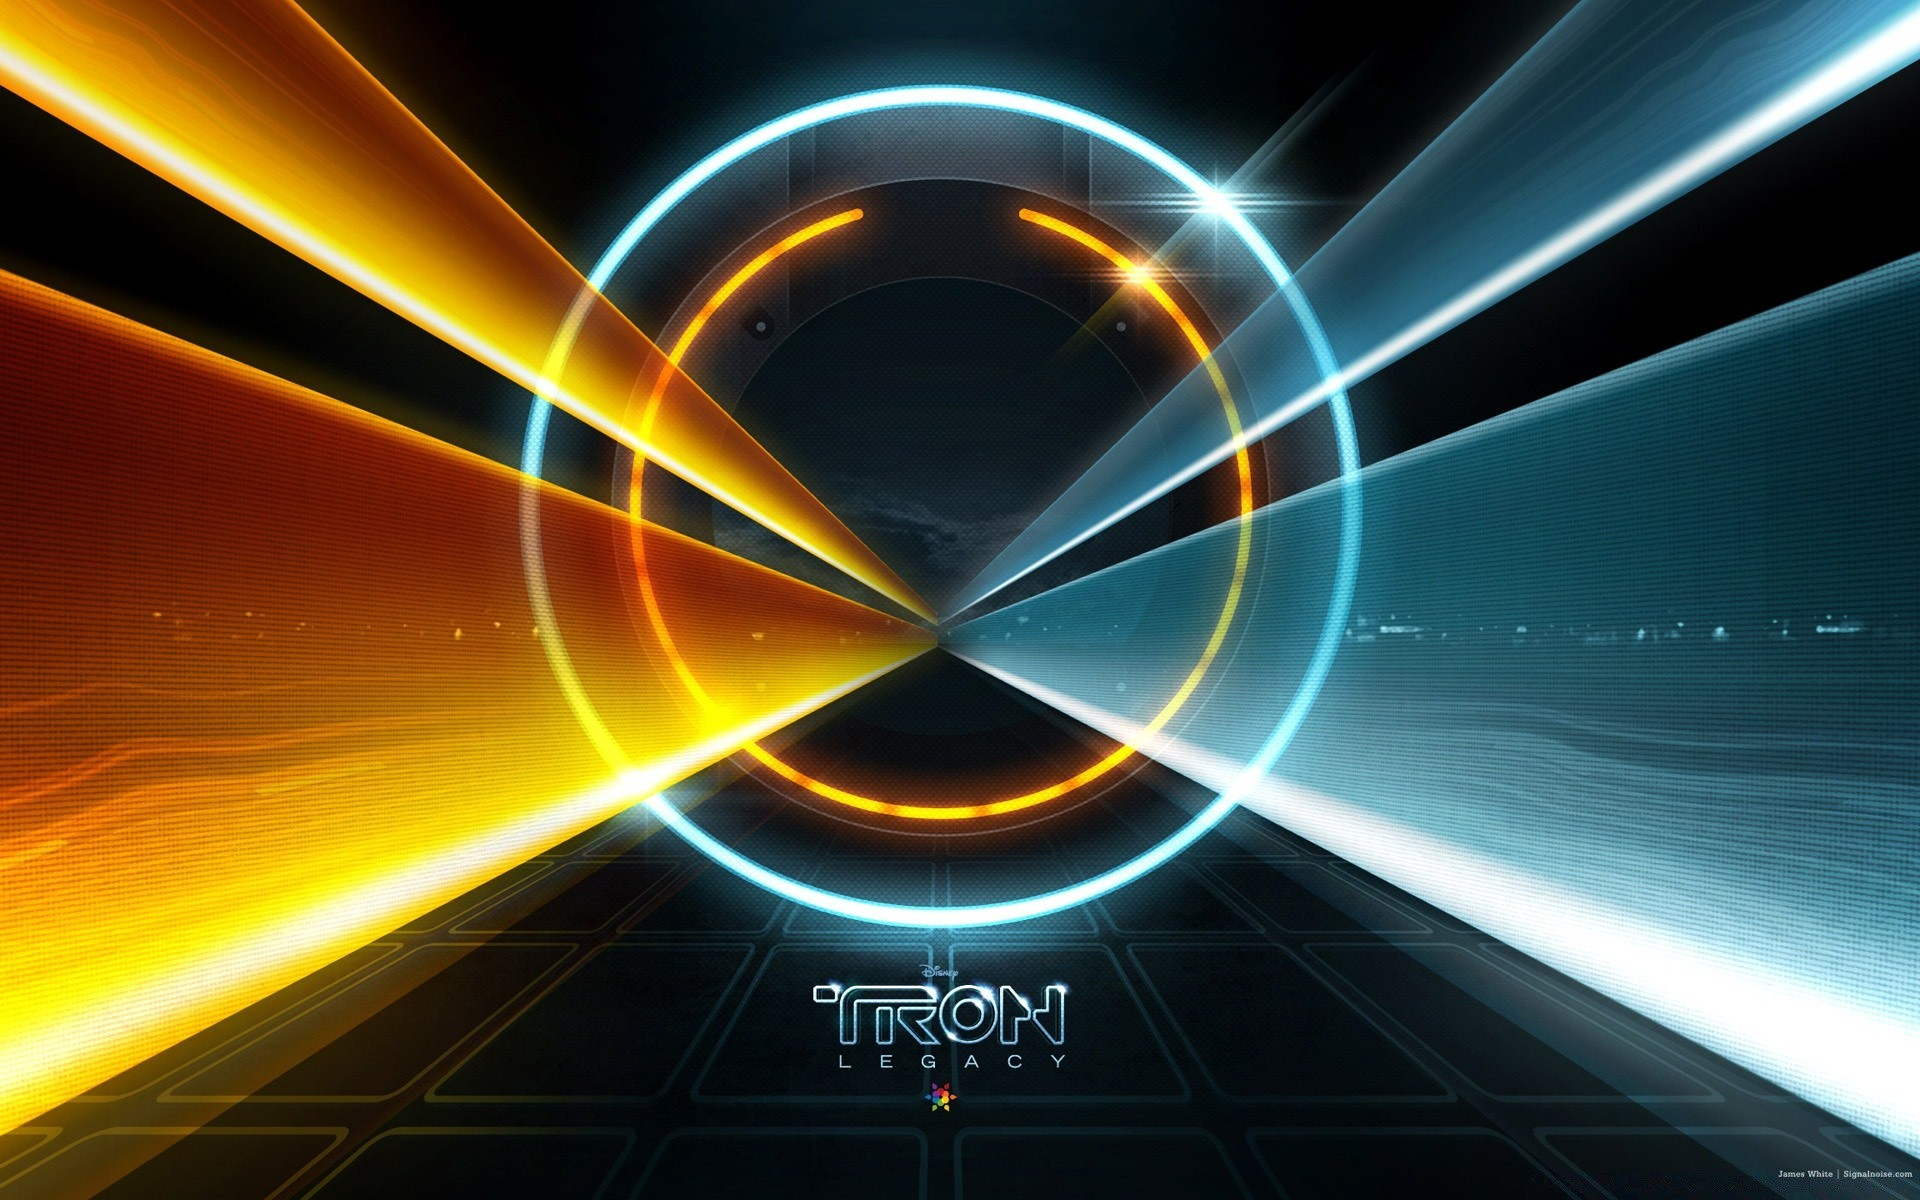 tron legacy movie android wallpapers for free